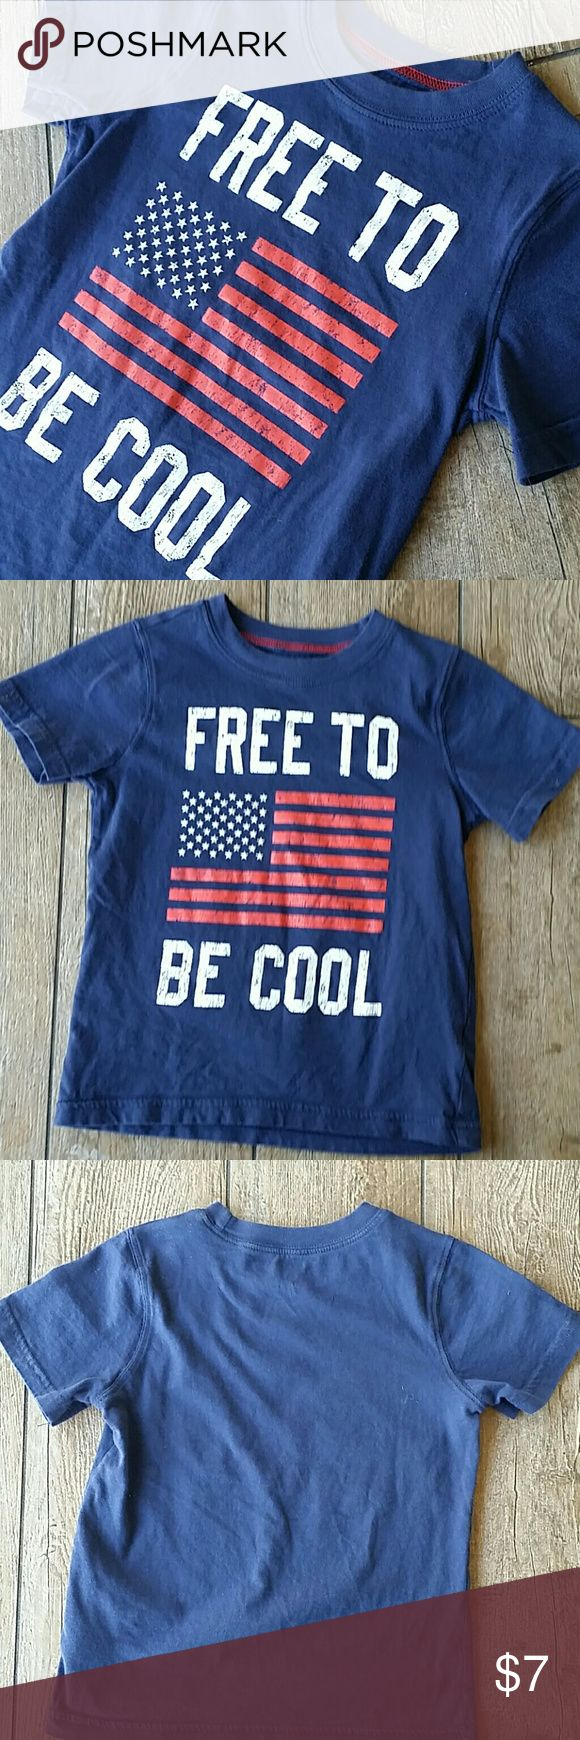 "🎆CARTER'S AMERICANA SHIRT🎆 Dark Navy blue shirt sleeve tee Distressed flag and ""FREE TO BE COOL"" on front Solid back No rips, stains, pilling or fading Carter's Shirts & Tops Tees - Short Sleeve"